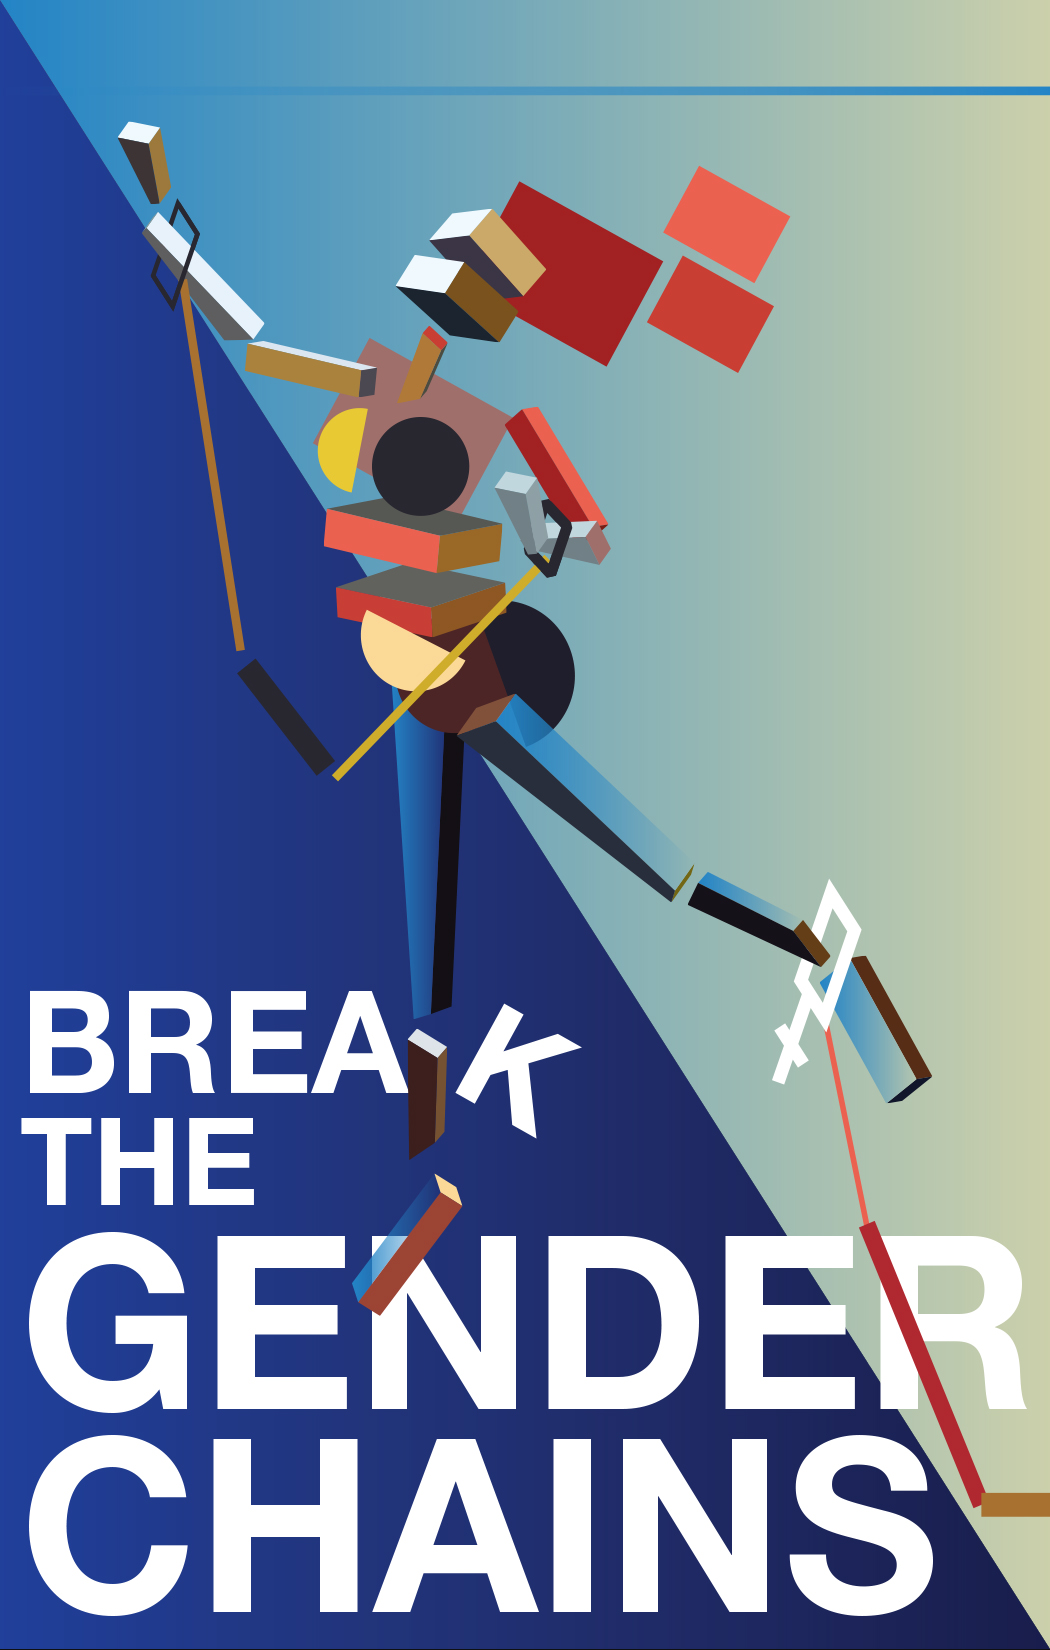 Break the Gender Chains - Poster size: 11 x 17 (inch)This propaganda poster is calling people to Break the Chains of dependency for girls and women and put gender equality right at the heart. The art style is inspired from Kazimir Malevich.